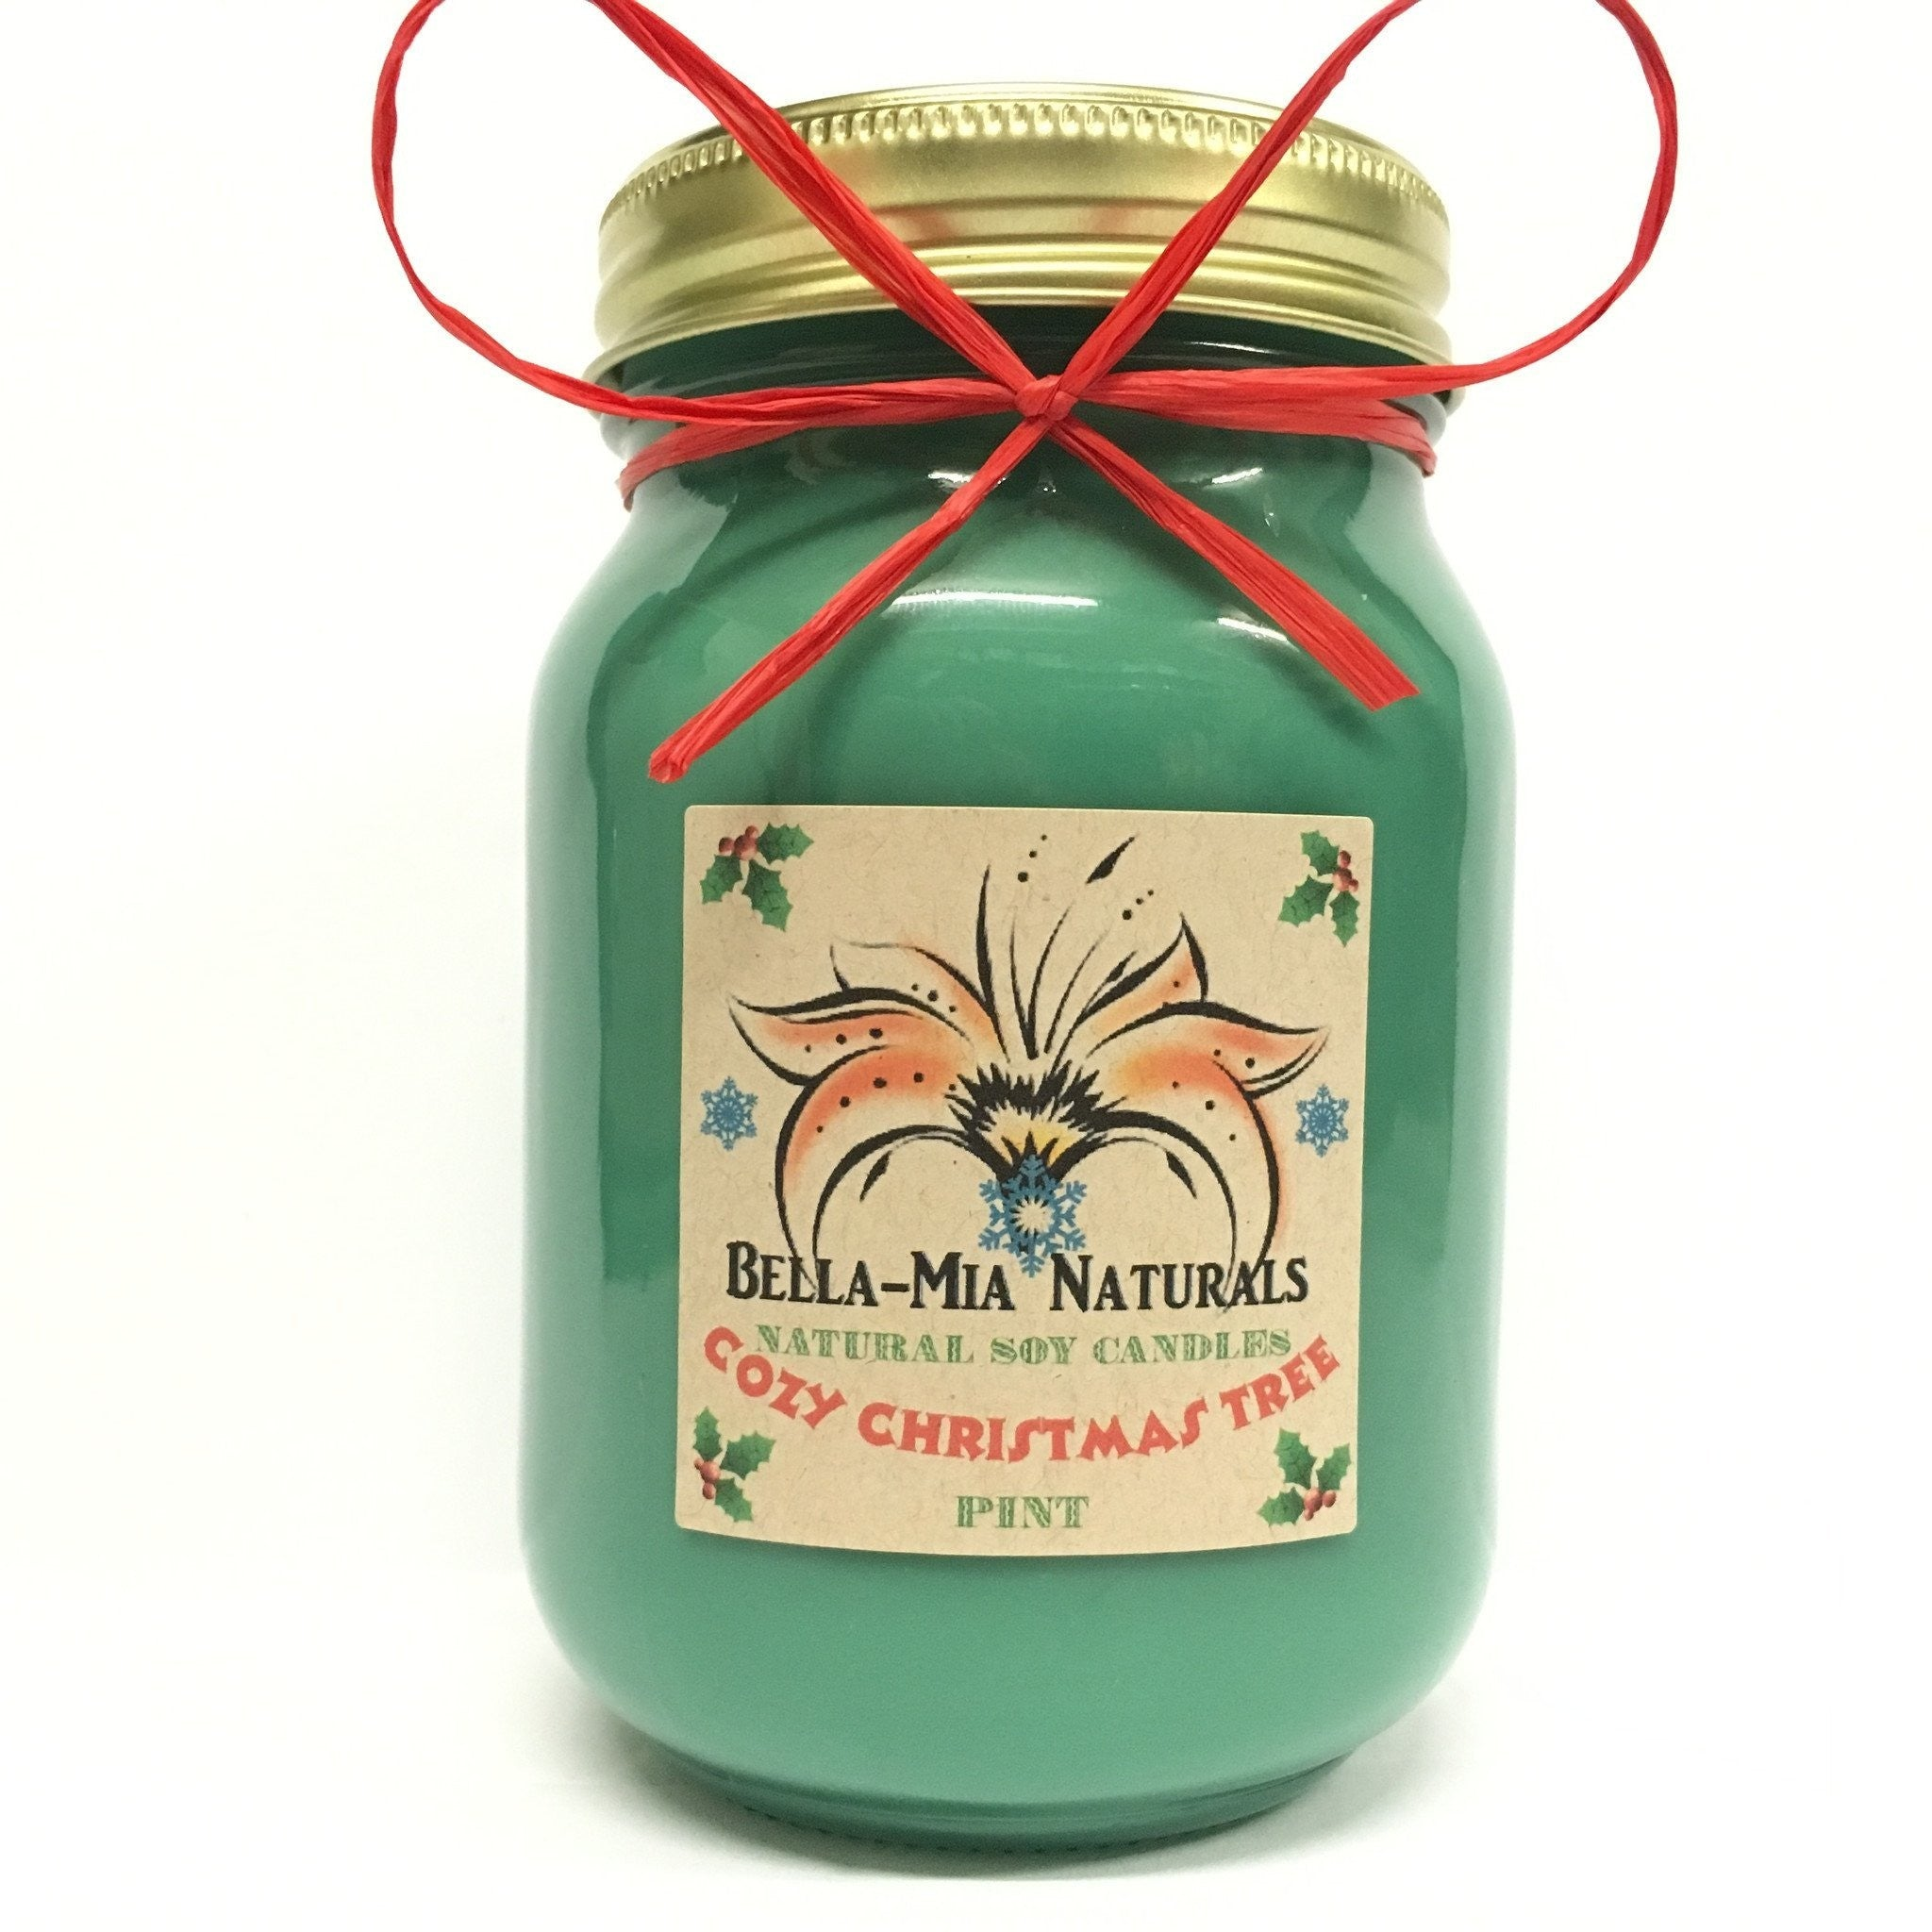 Cozy Christmas Tree Natural Hand Poured Soy Candles - Pint - Bella-Mia Naturals All Natural Soy Candles & Lip Balms - 2